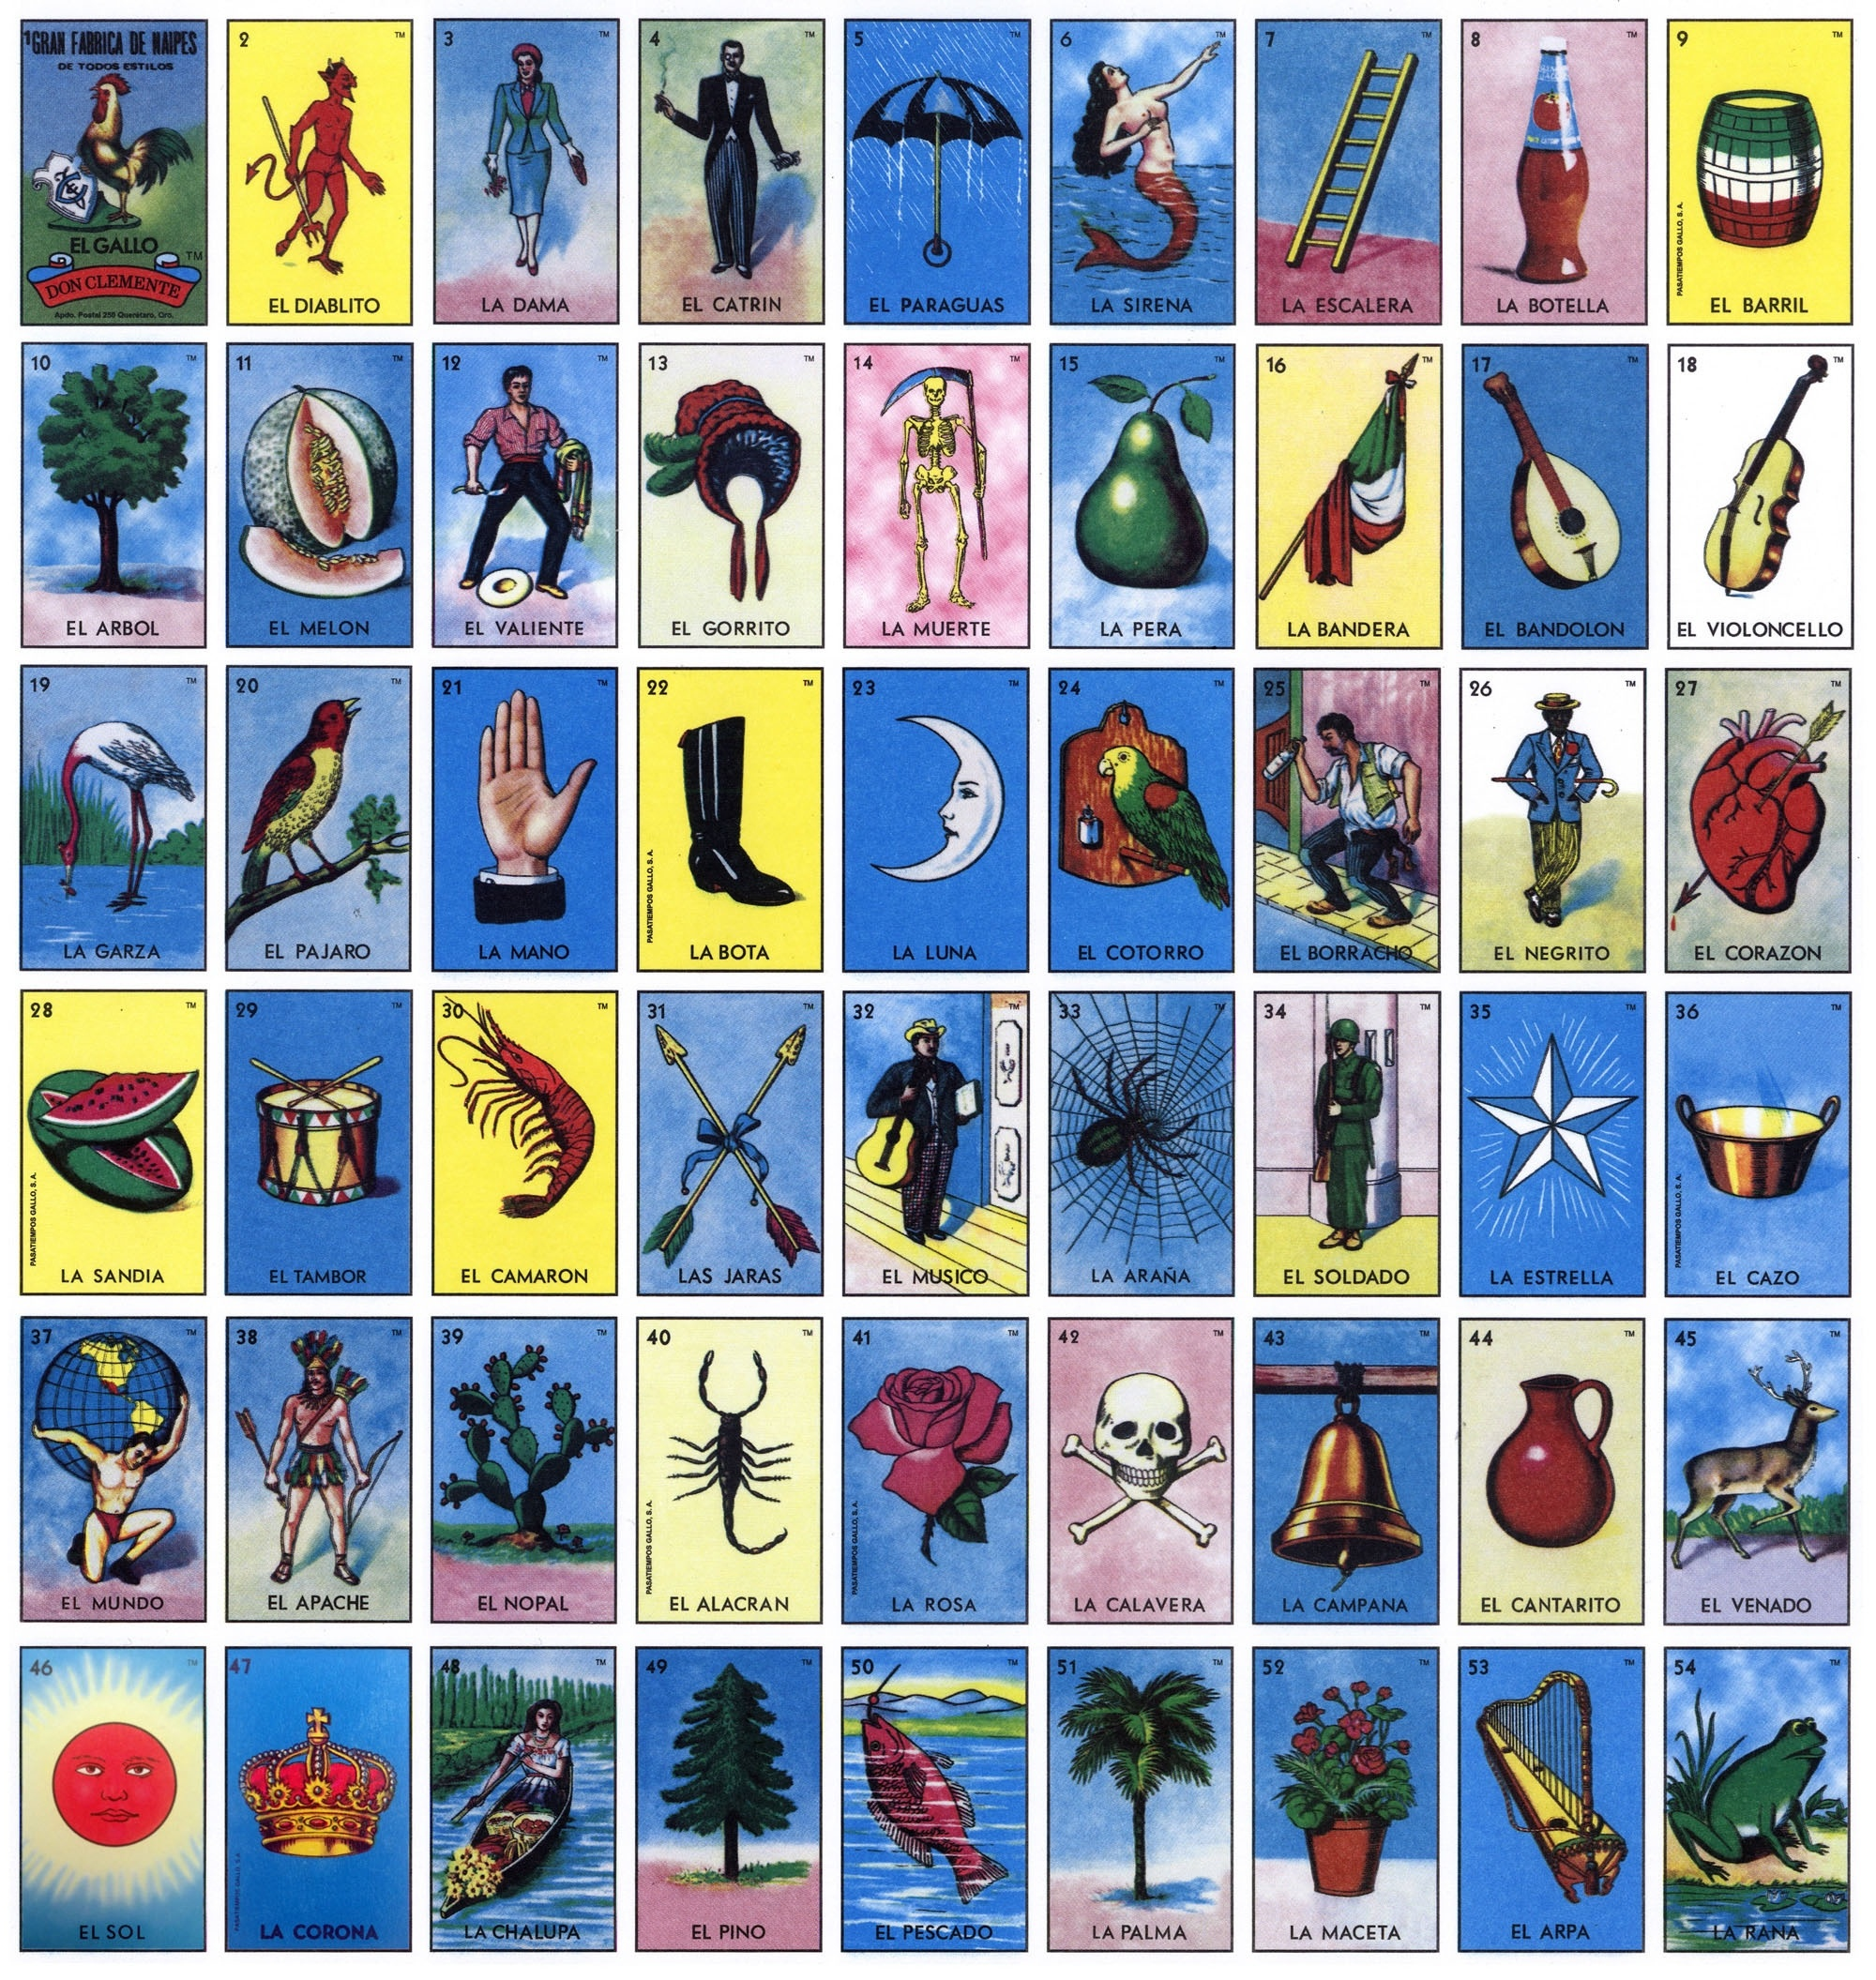 Free Printable Loteria Cards Images Pdf Free Download - Free Printable Loteria Game